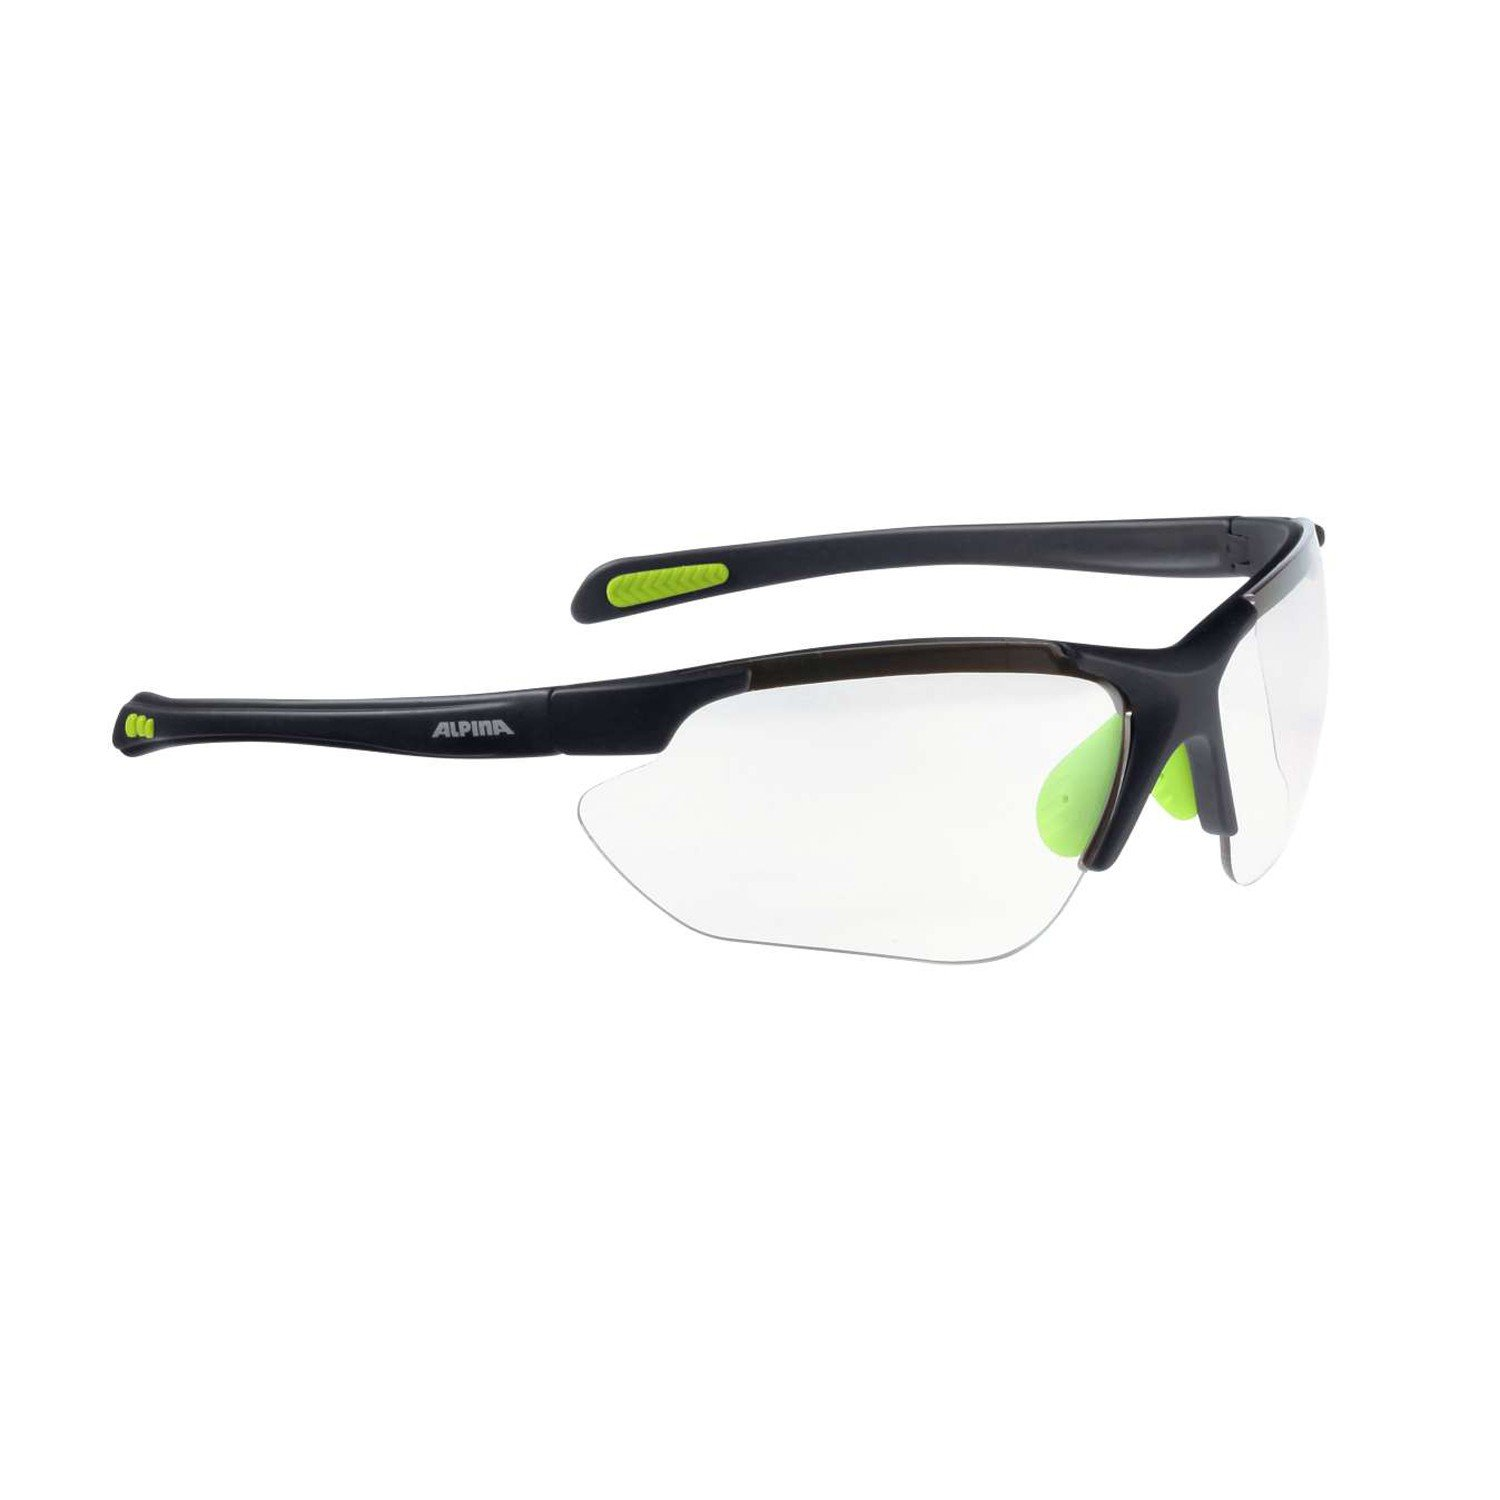 Alpina Amition Jalix Sonnenbrille, Green-Black, One Size